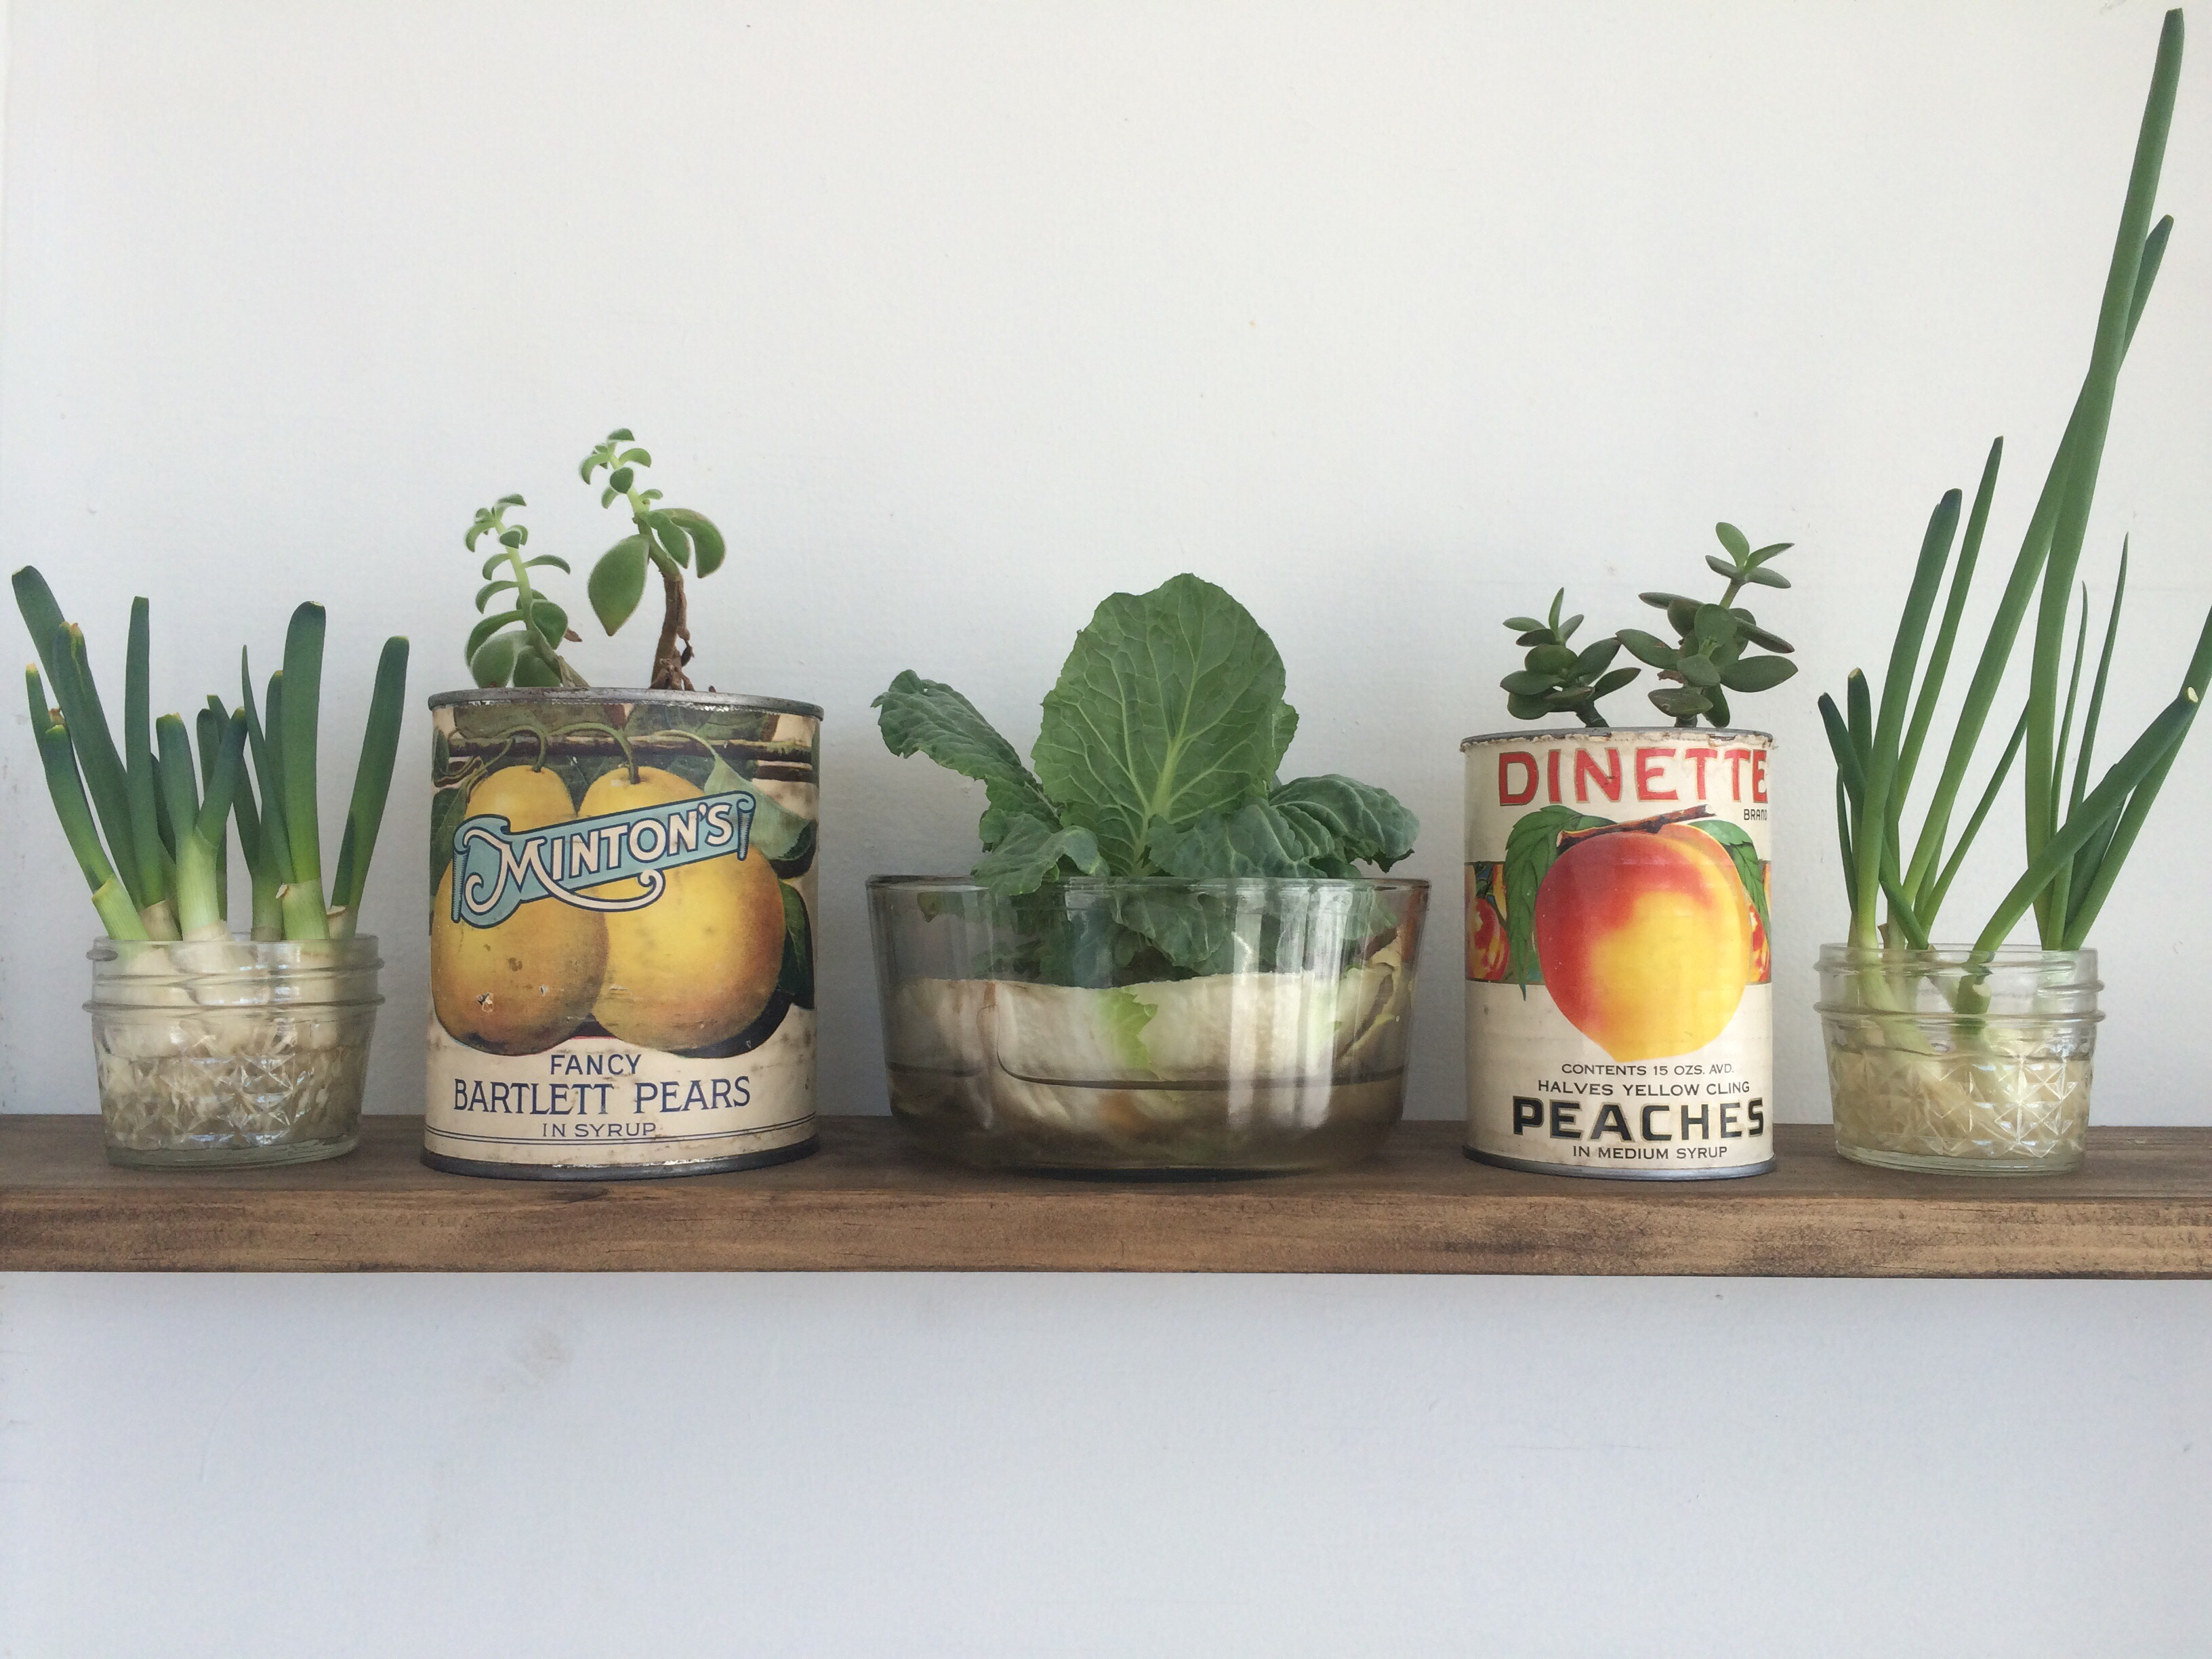 How to Regrow Your Own Vegetables Without Soil